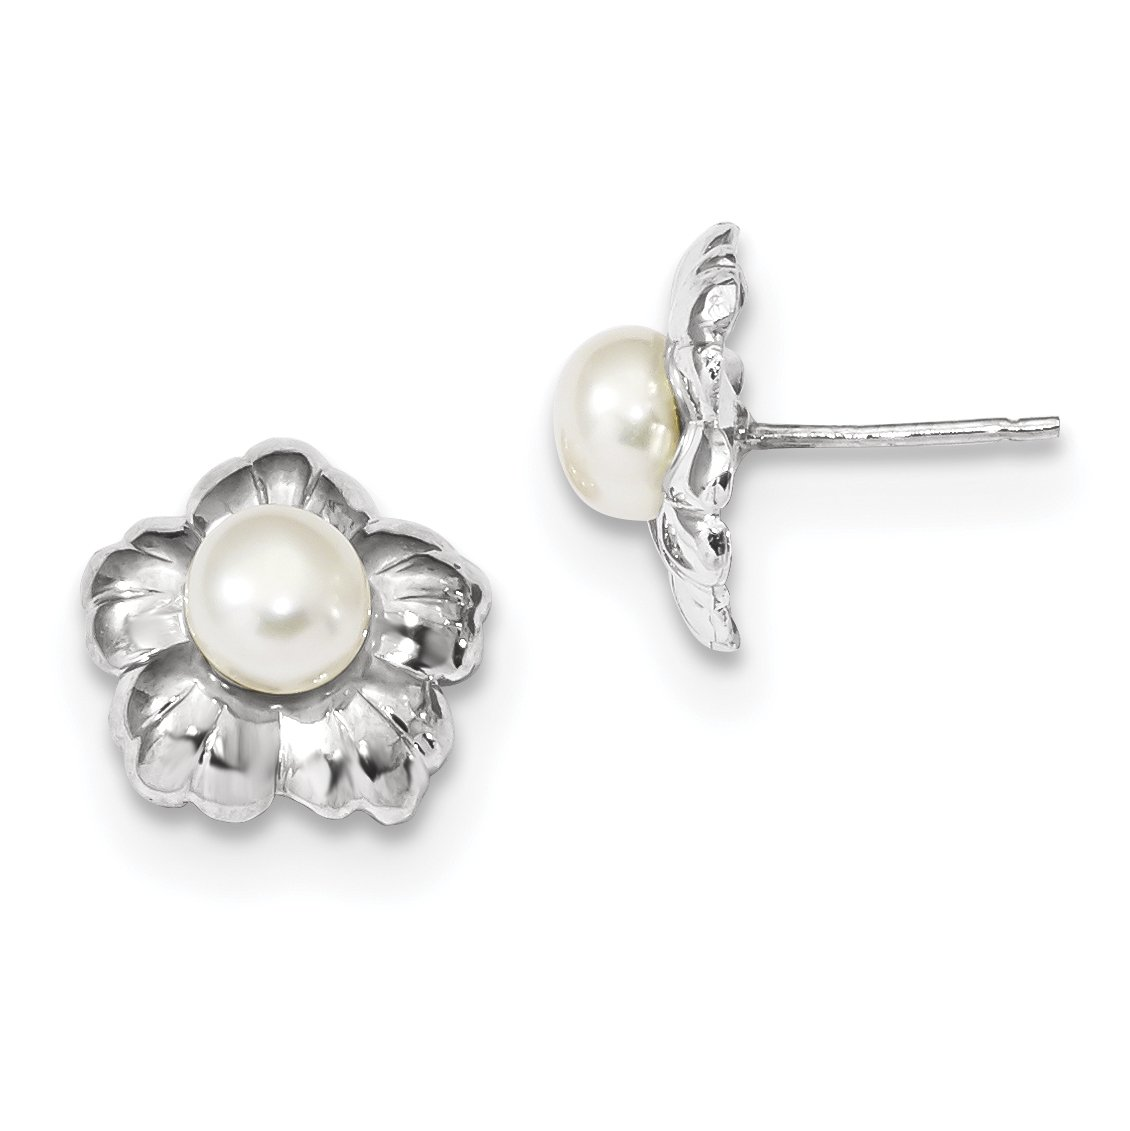 ICE CARATS 14k White Gold 6mm Button Freshwater Cultured Pearl Flower Post Stud Ball Earrings Fine Jewelry Gift Set For Women Heart